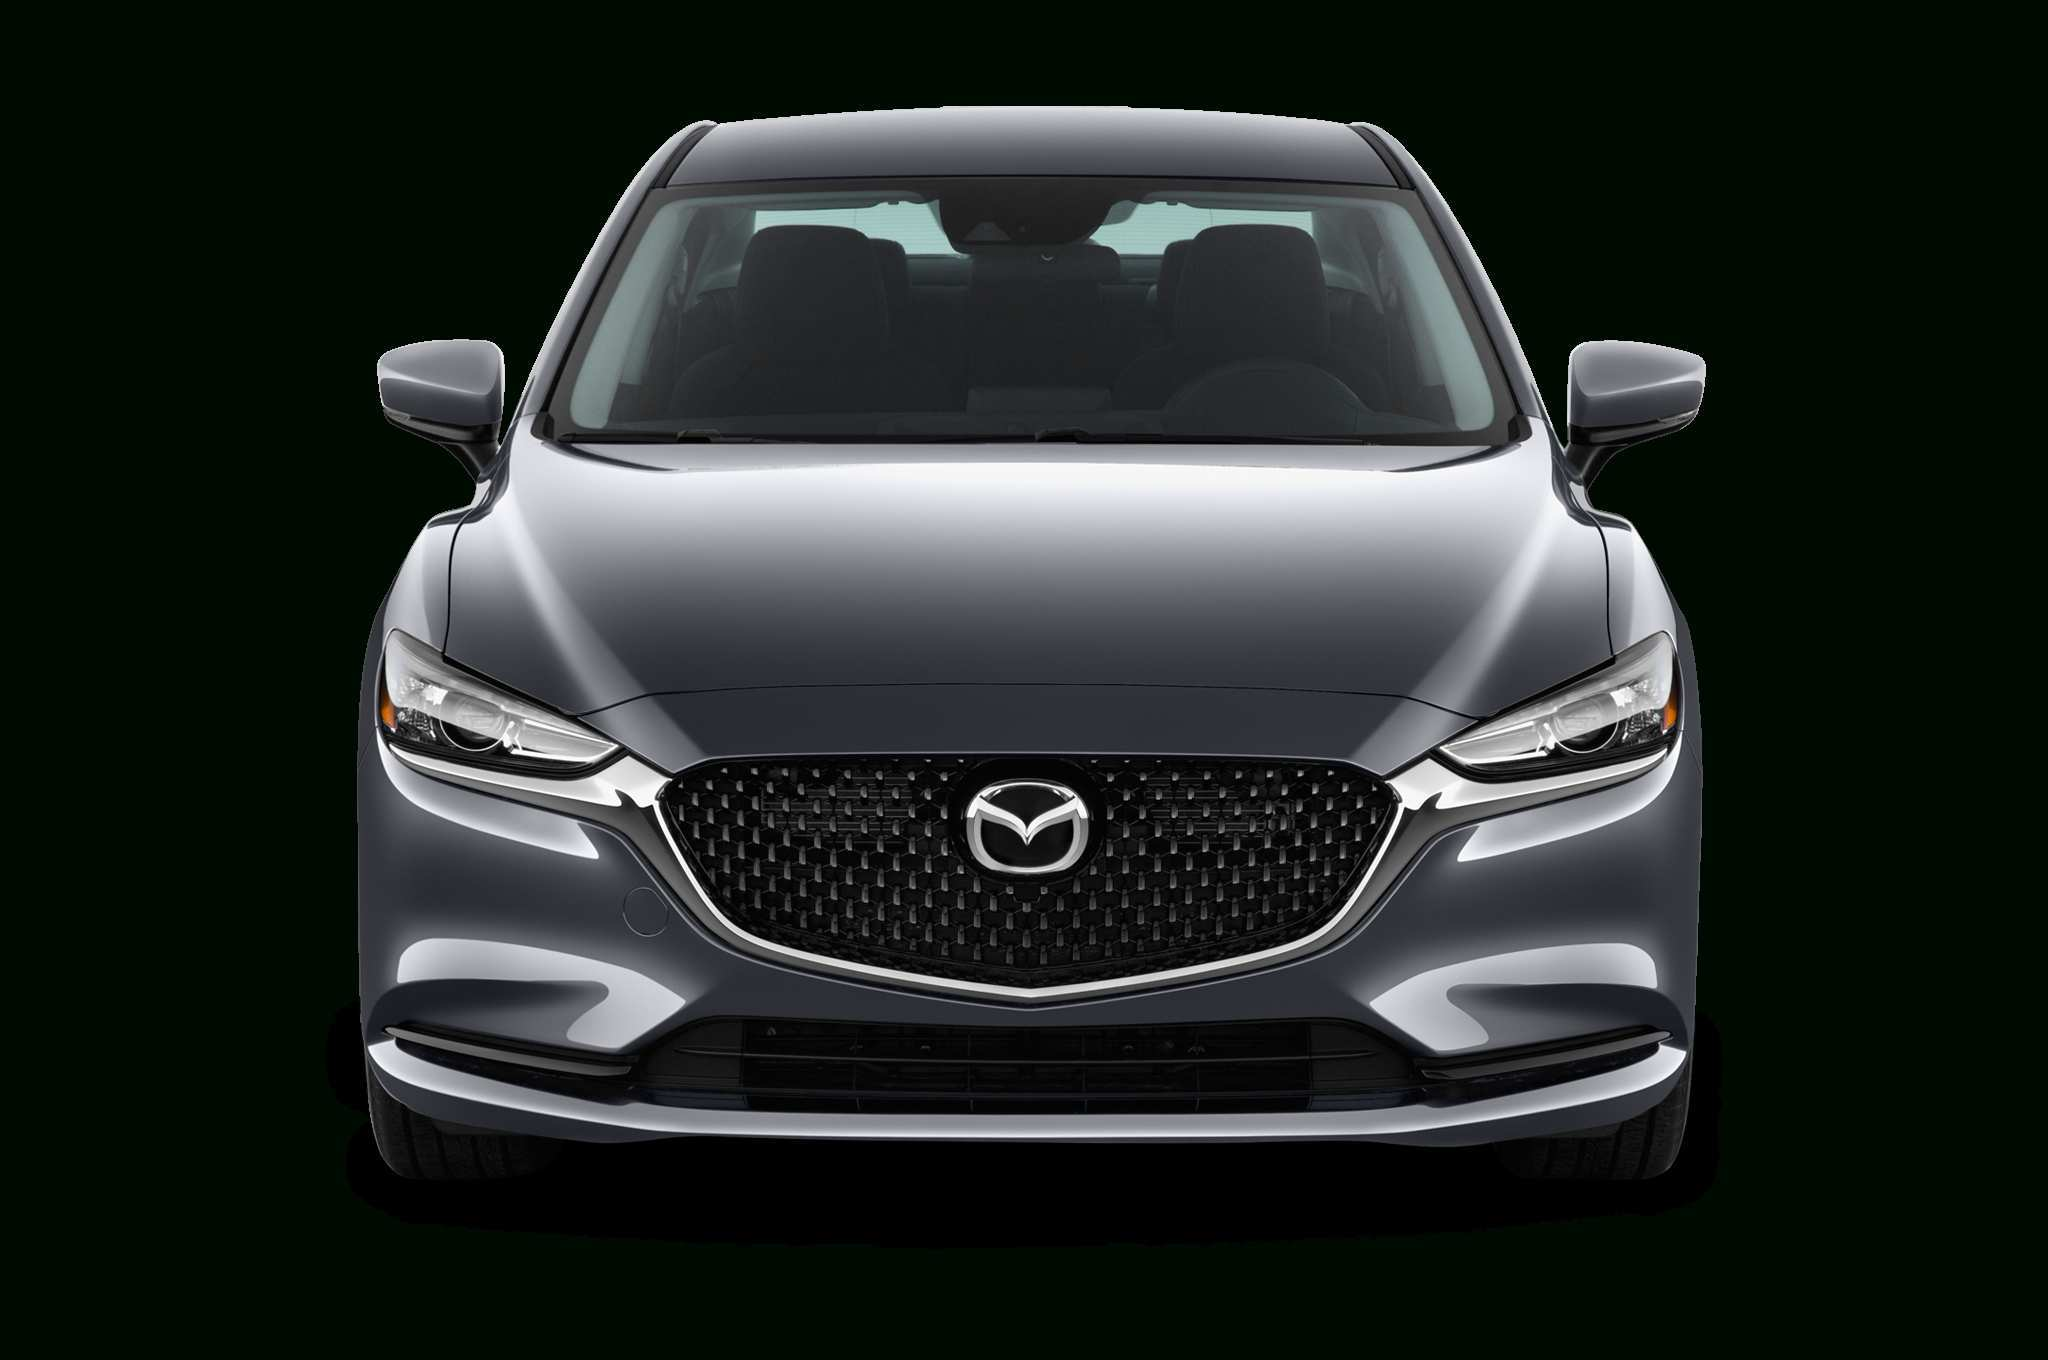 31 Concept of 2019 Mazda 6 Turbo 0 60 Photos for 2019 Mazda 6 Turbo 0 60